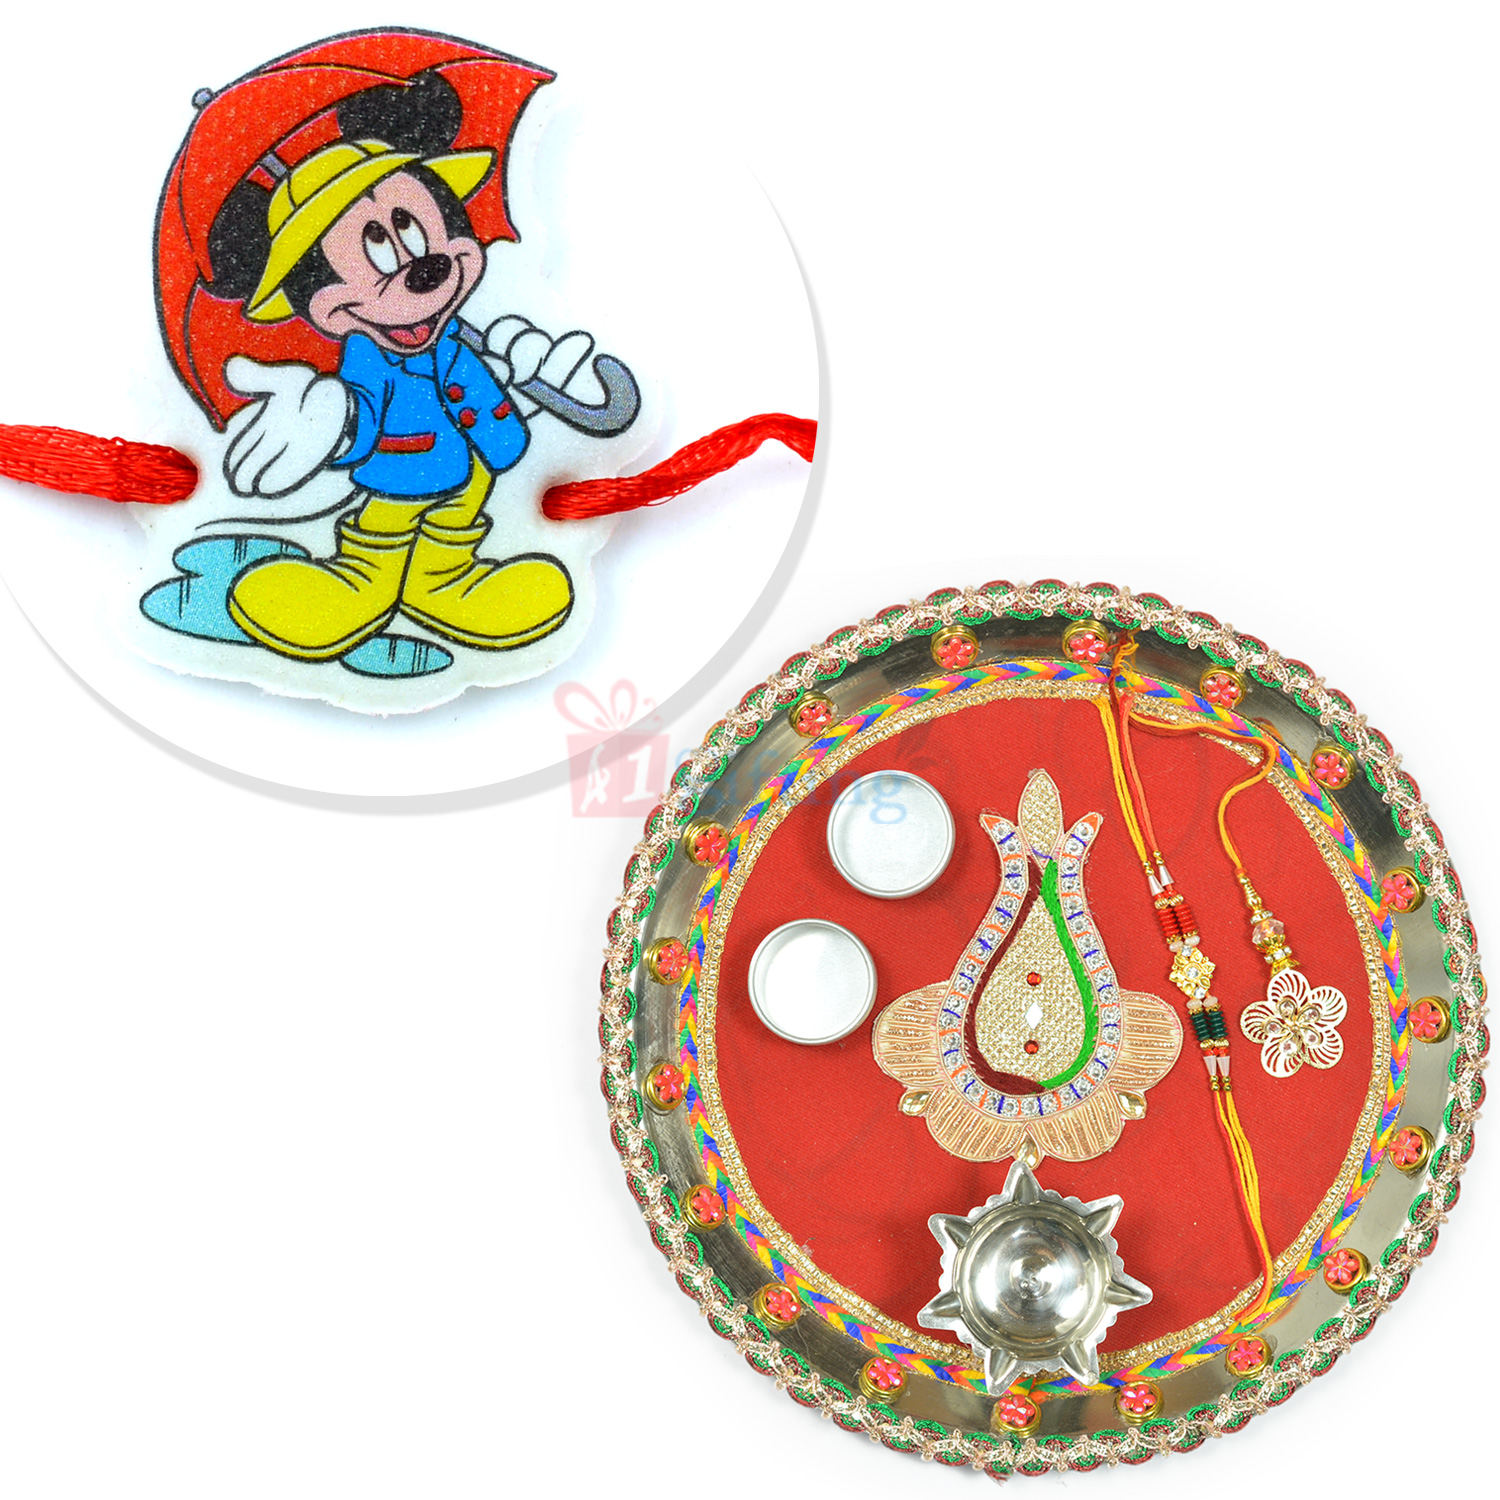 Exclusive Gotta Work Designer Rakhi Thali with Micky Kids Rakhi Hamper